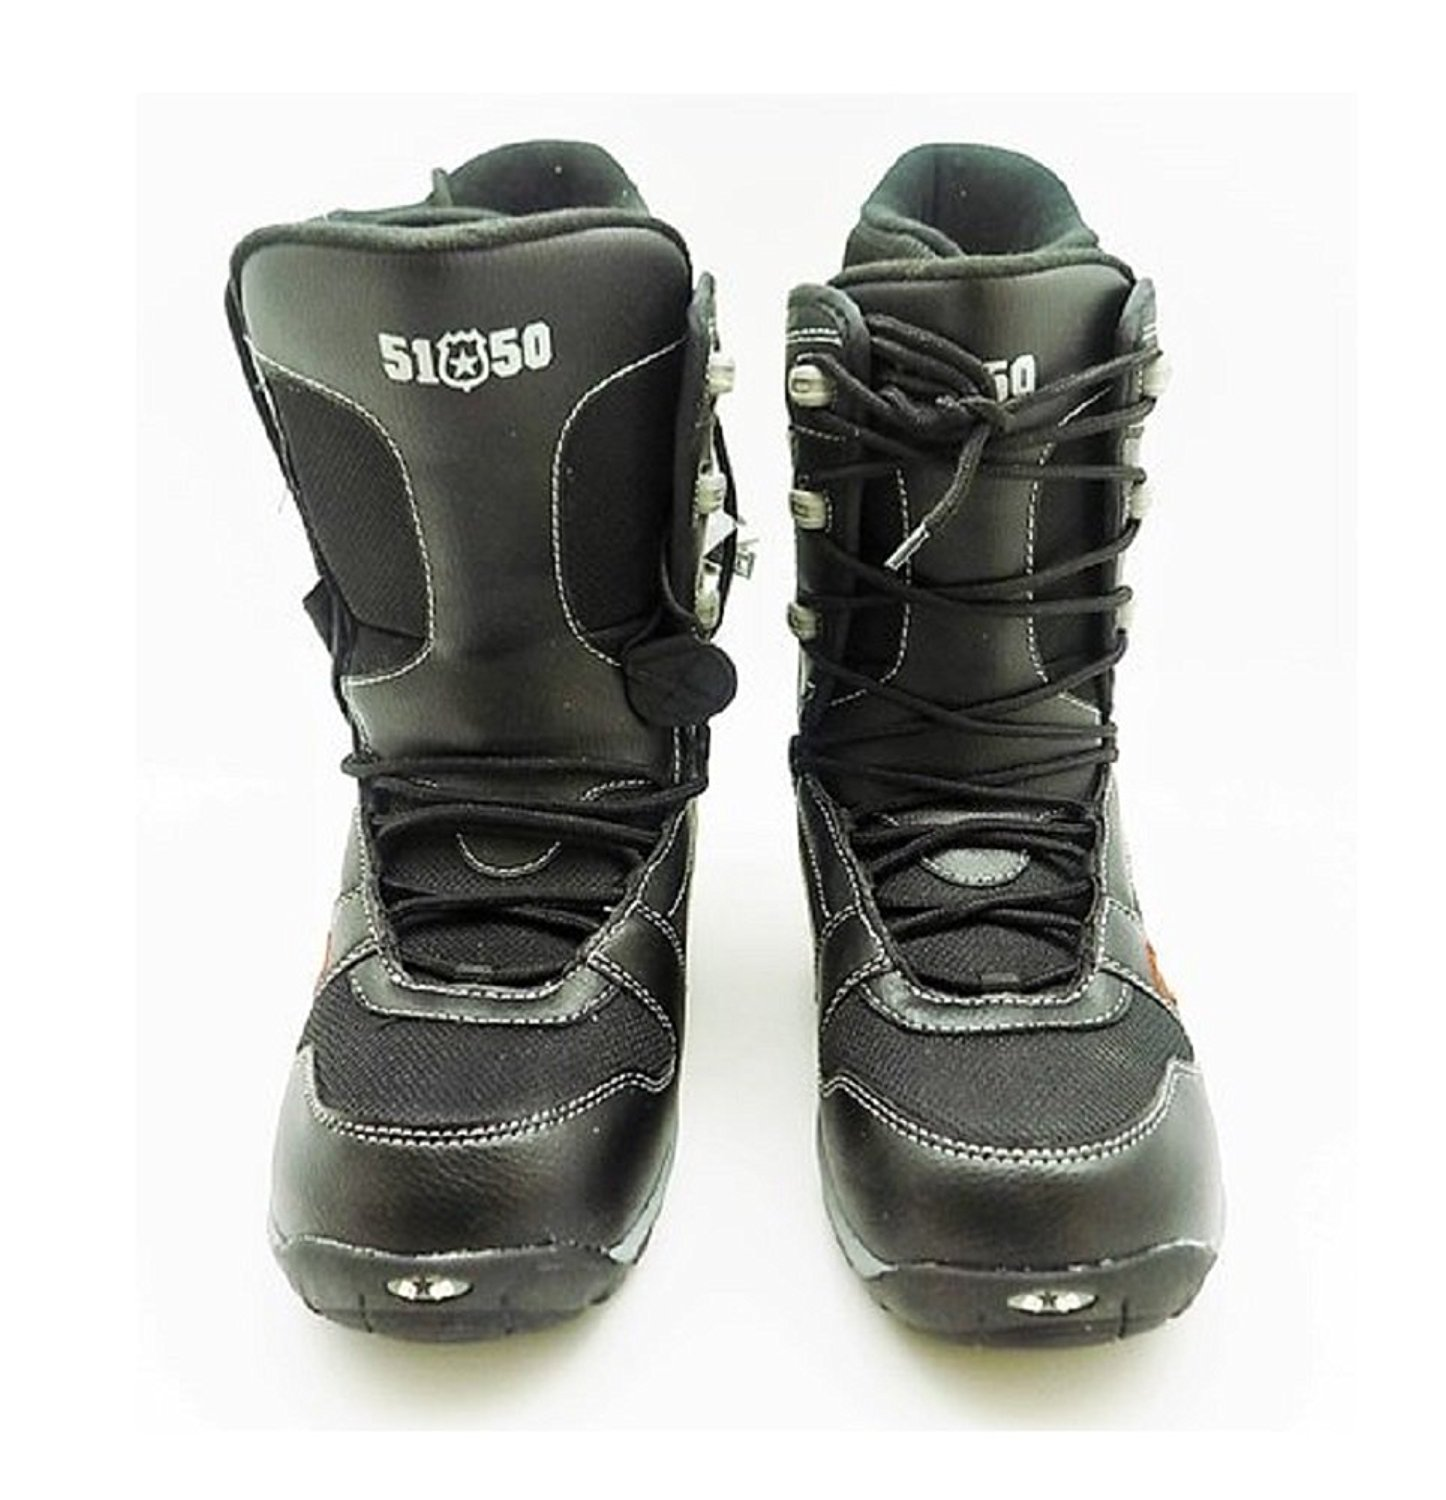 5150 Squadron Snowboarding Boot by 5150